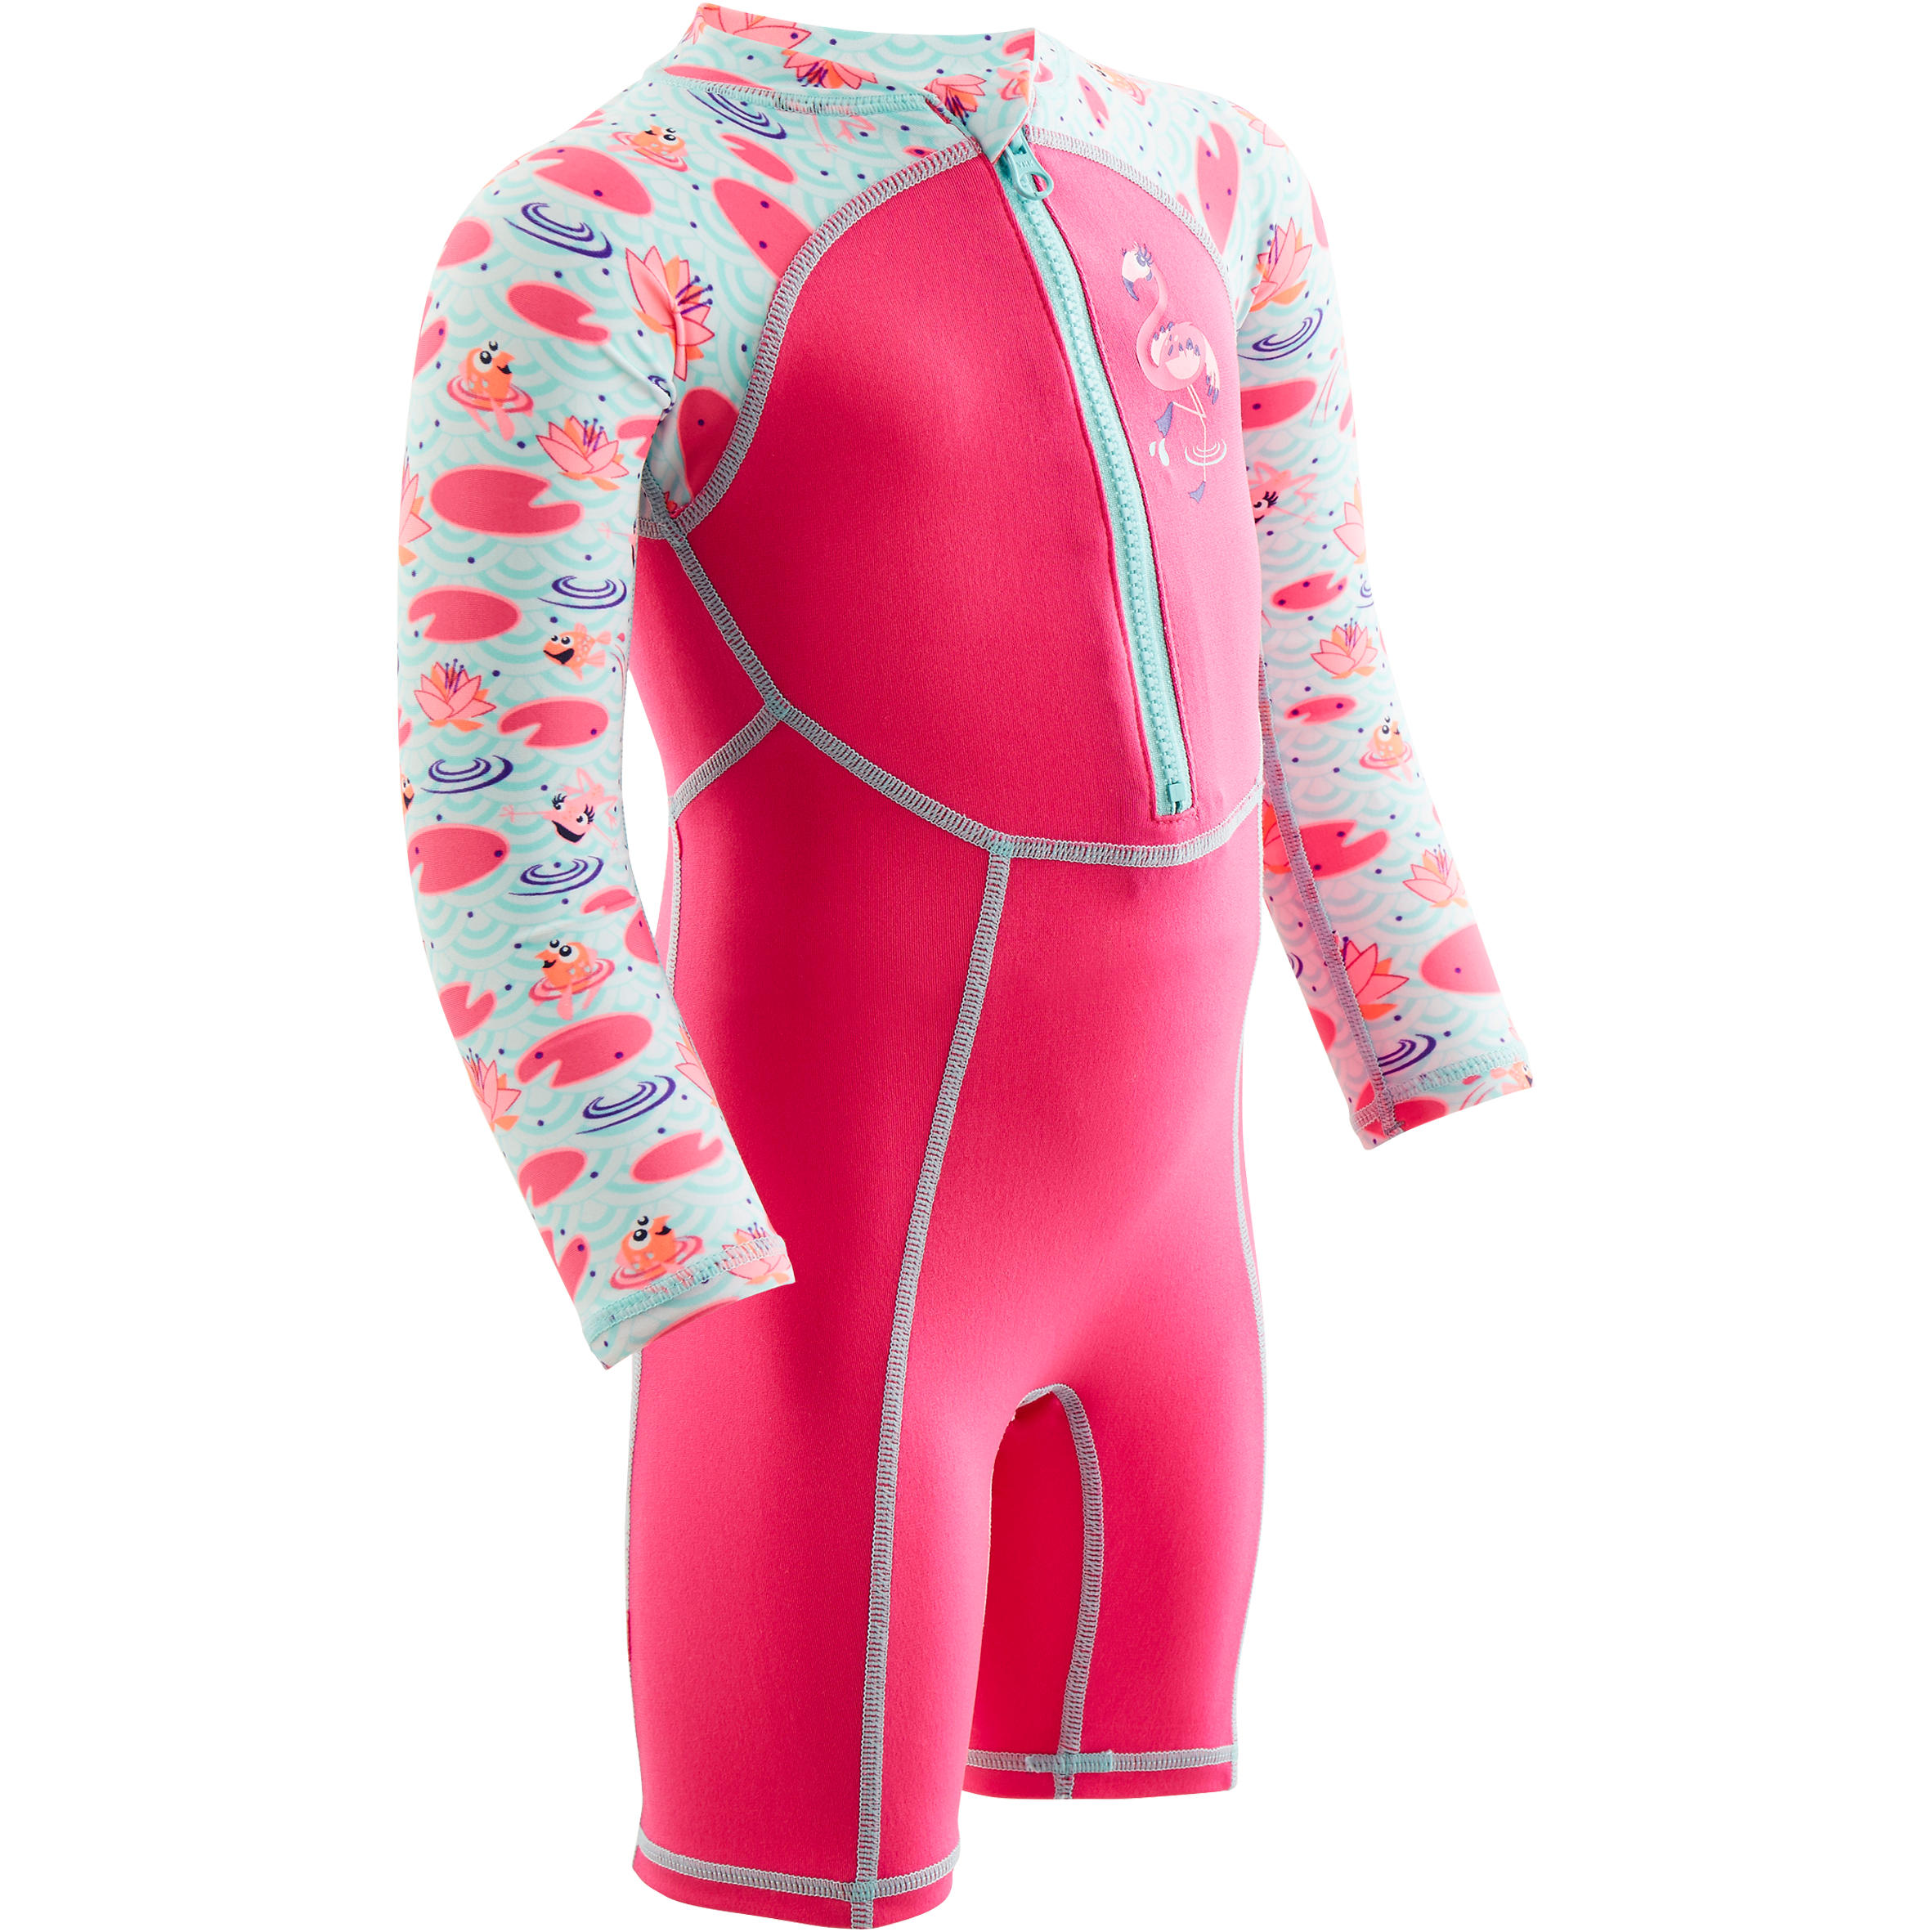 Baby long-sleeved Shorty Swimsuit pink print